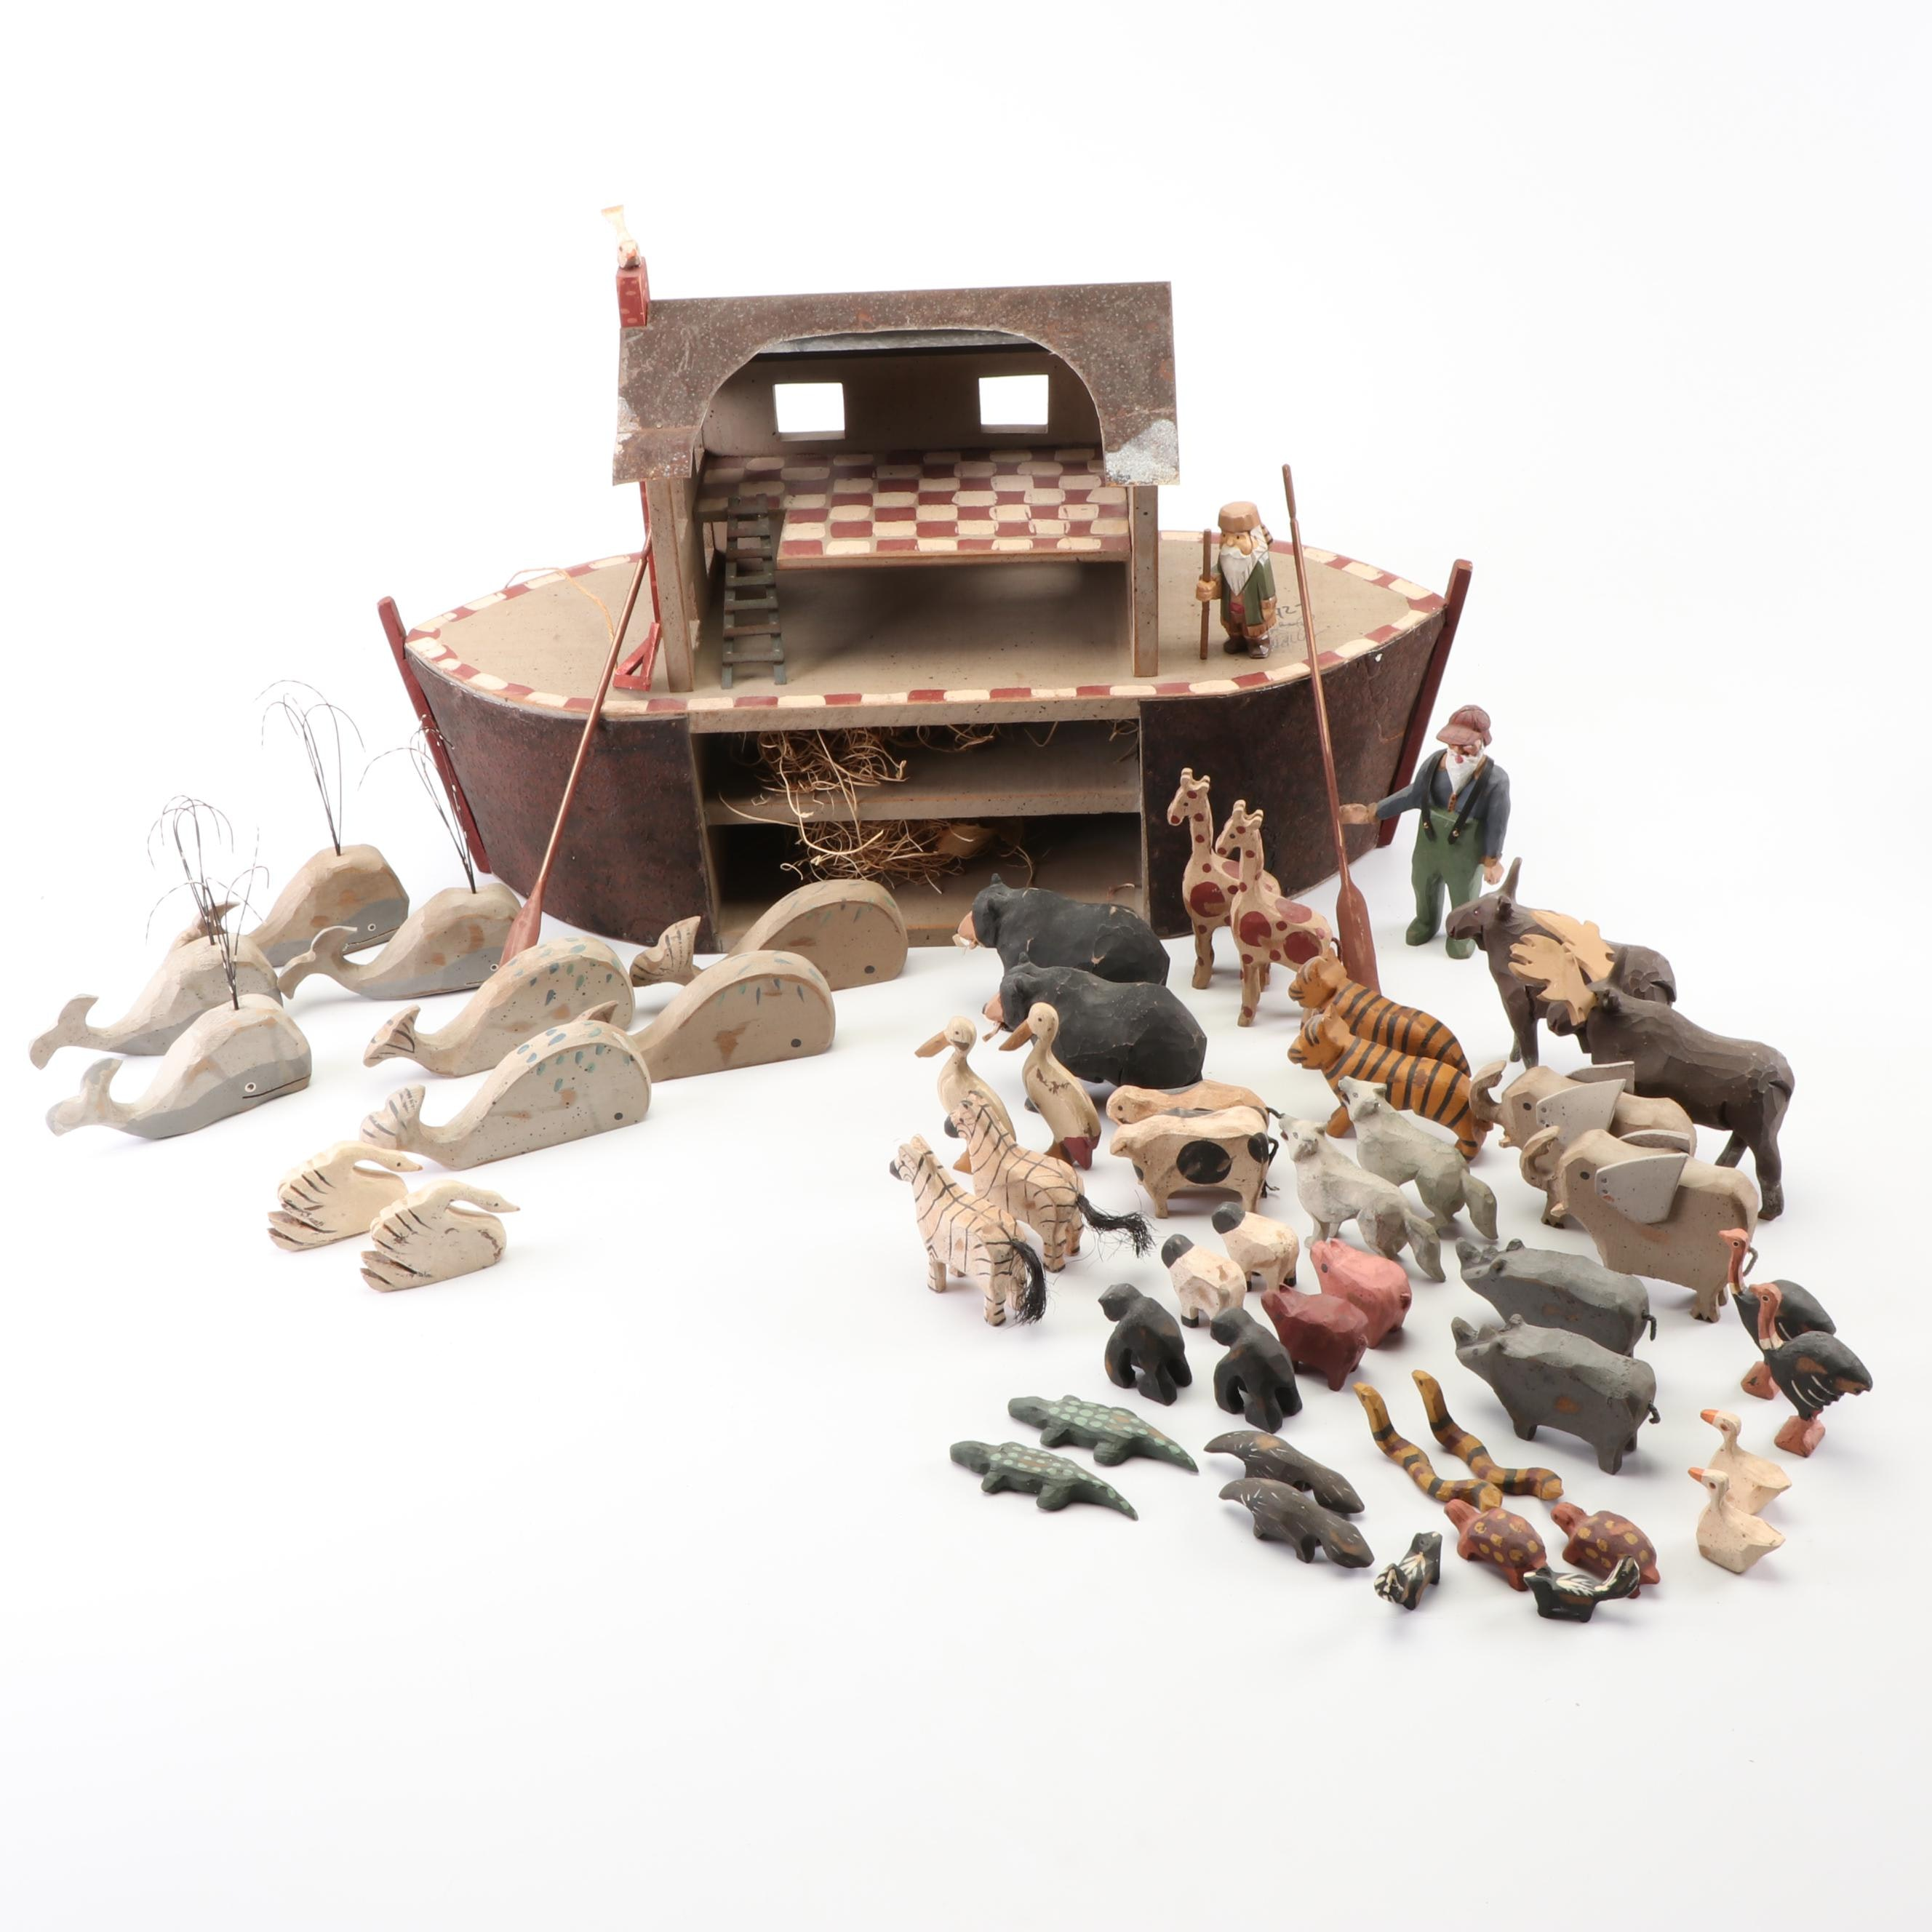 Milkwood Toy Co. Limited Edition Painted and Carved Wood Noah's Ark Play Set